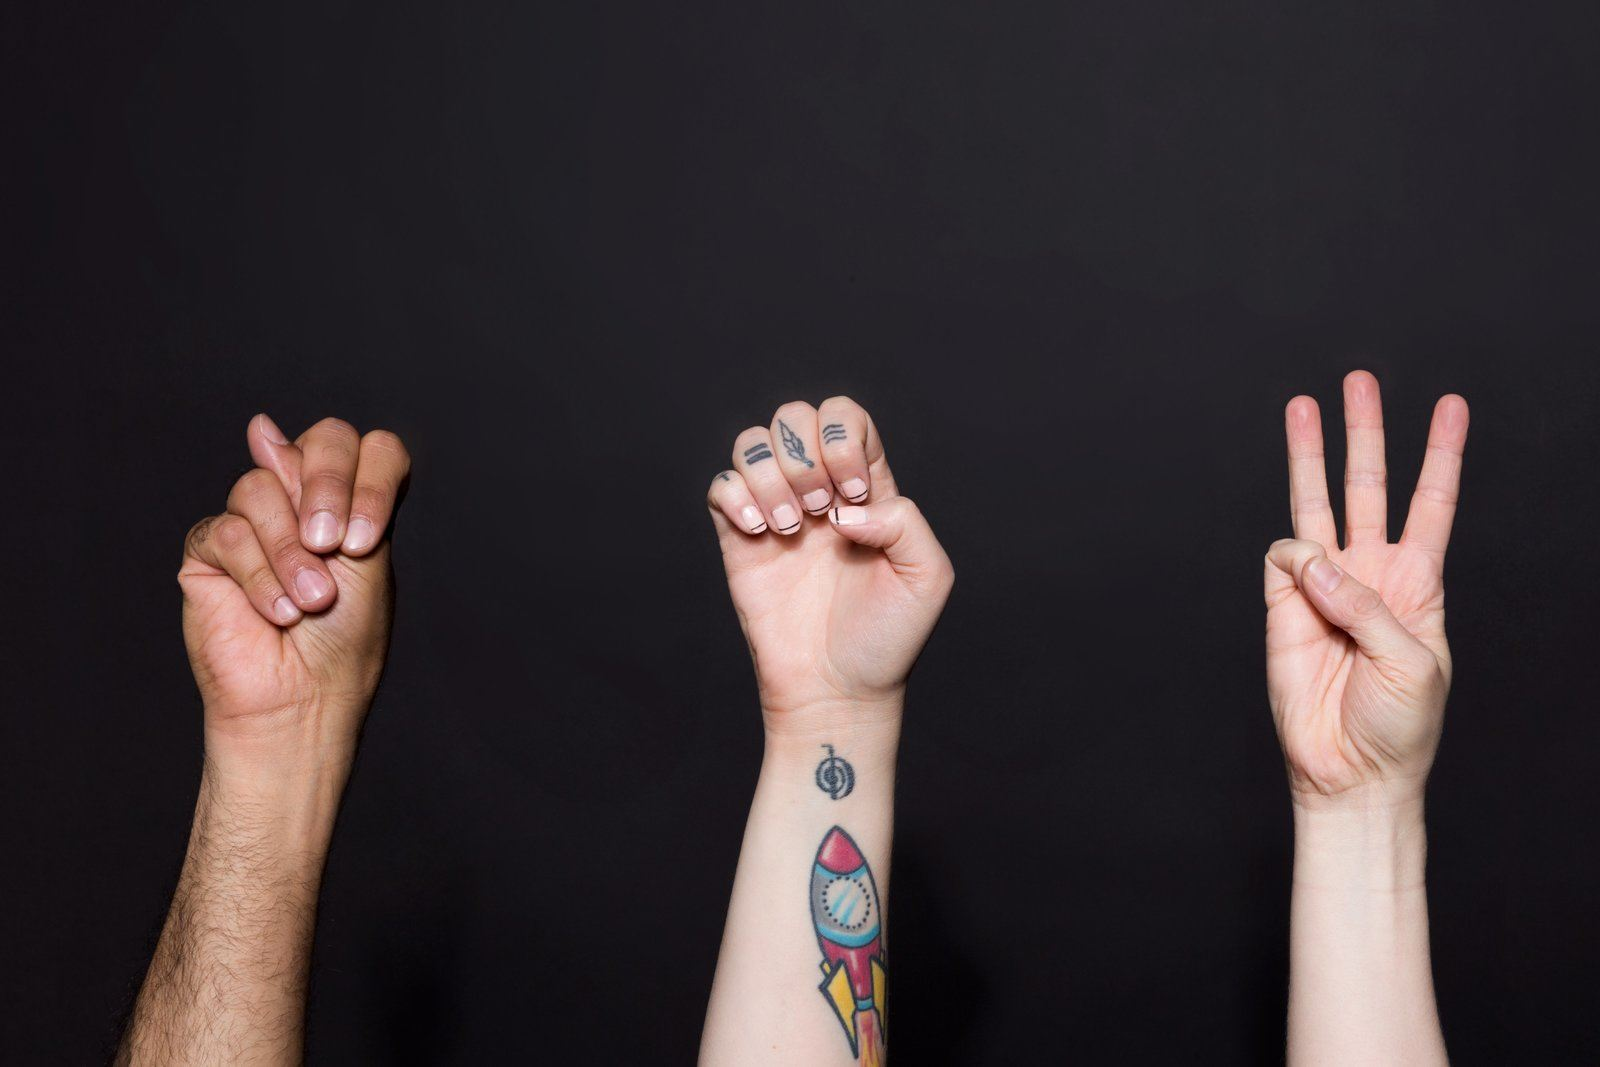 """Three hands sign the word """"NEW."""" Image credit: Sarah Pflug on Wunderstock (license)."""